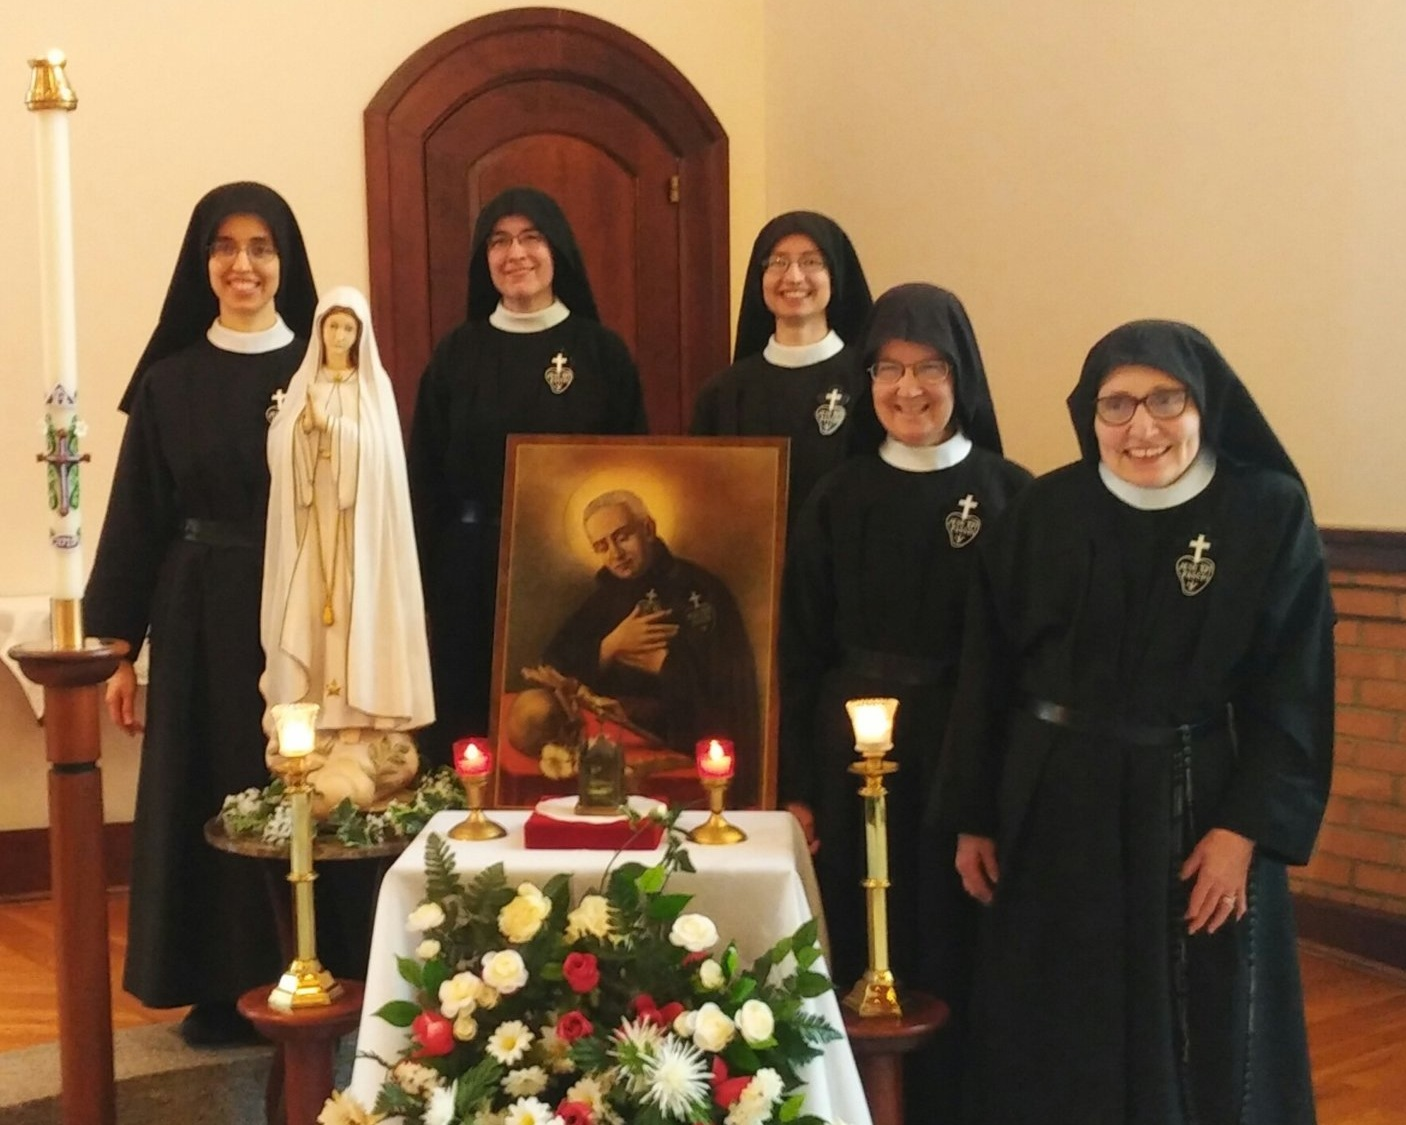 Sr. Mary Andrea (1st Councilor); Mother John Mary (Superior); Sr. Cecilia Maria (3rd Councilor); Sr. Mary Veronica (Vicar and Novice Directress); Sr. Mary Magdalen (2nd Councilor)